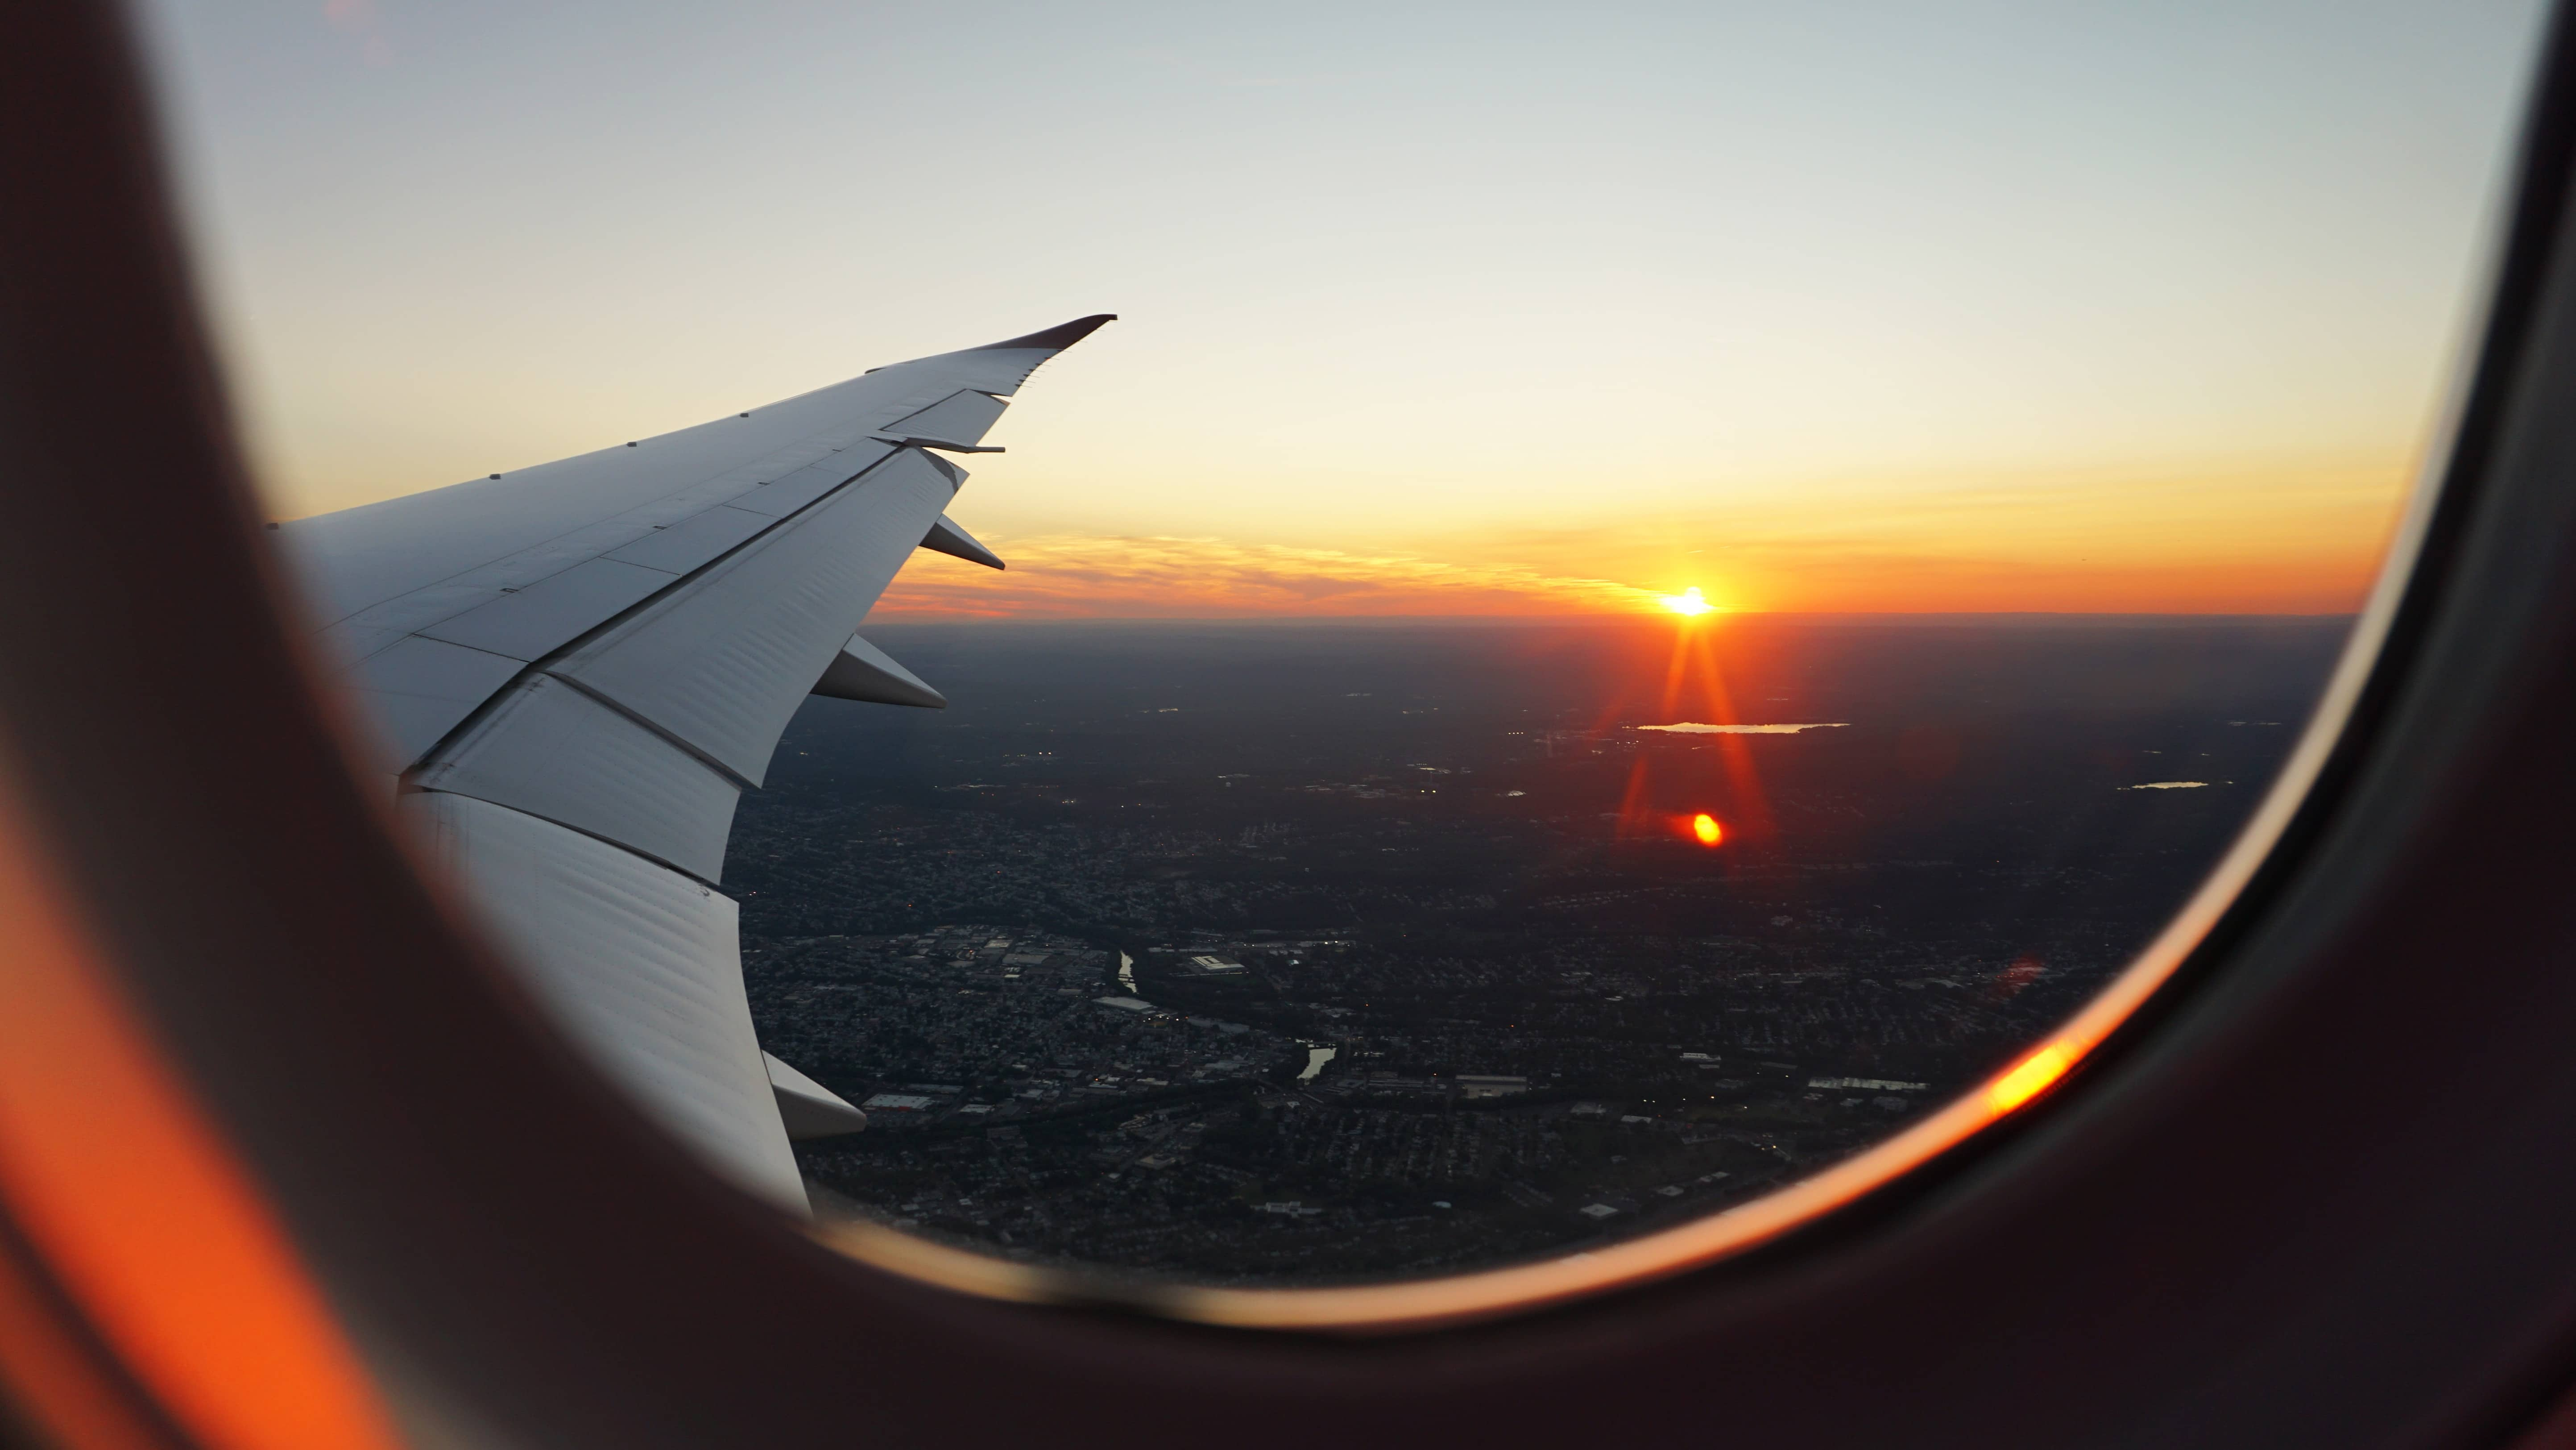 sunset flight window plane fromlusttilldawn.com from lust till dawn what is airbnb